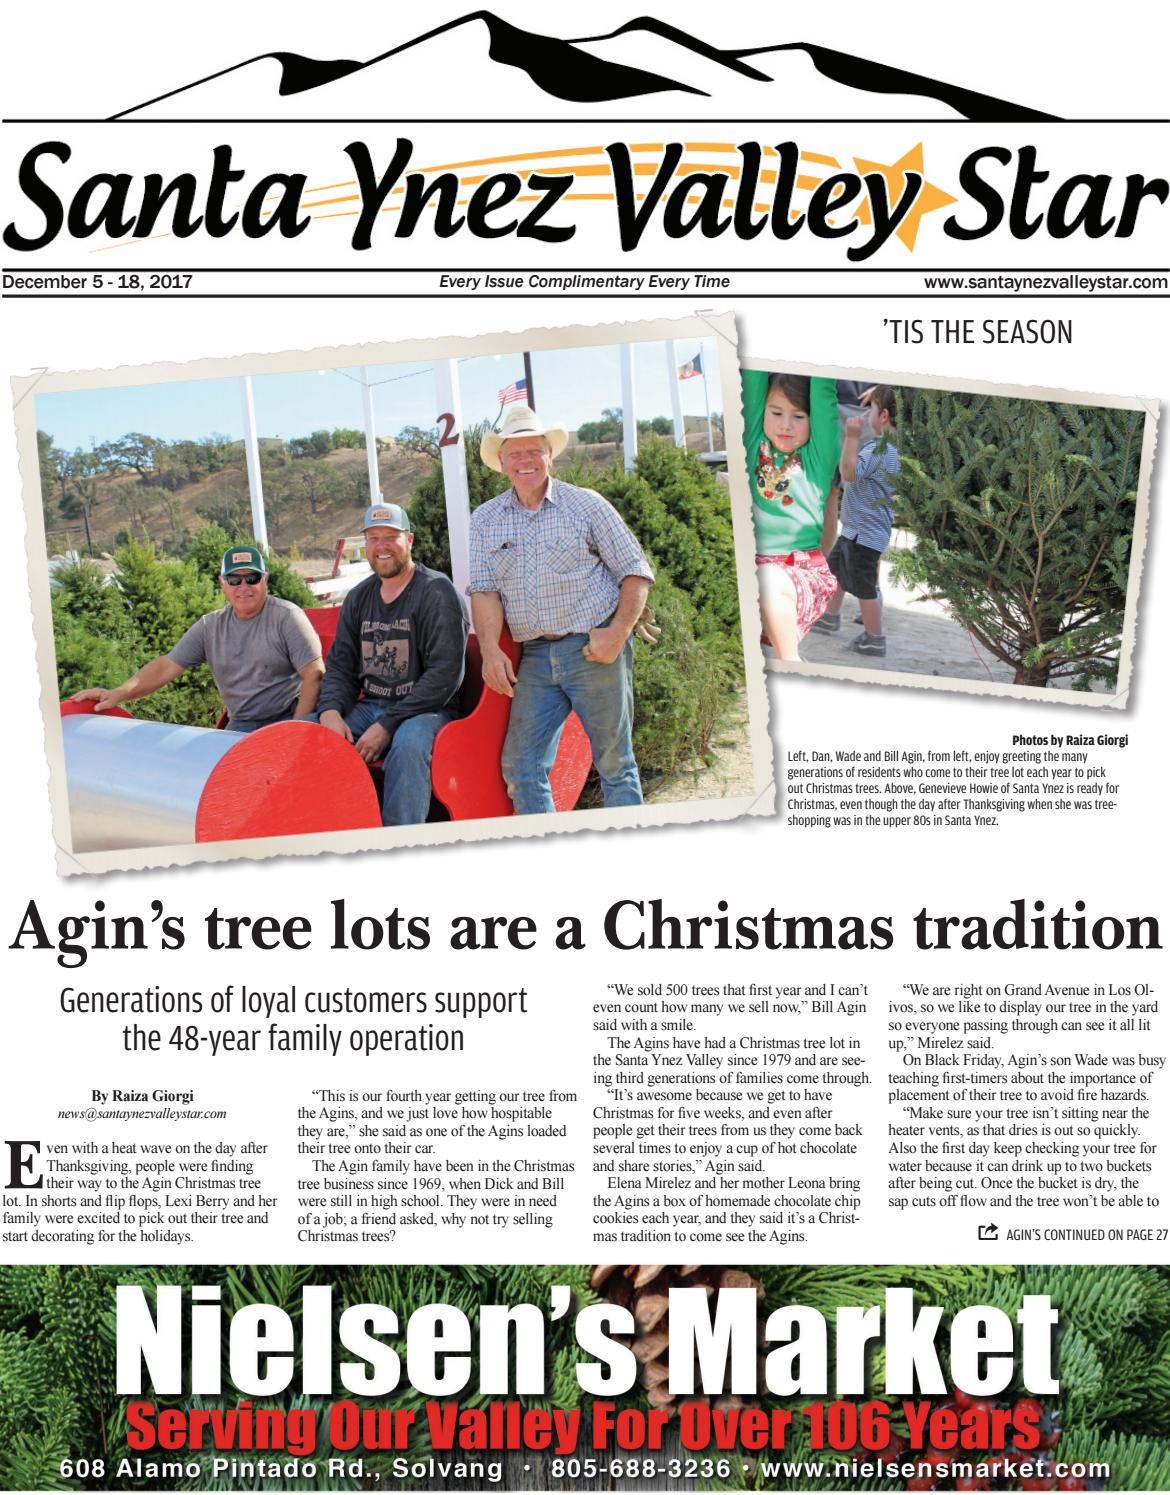 Santa Ynez Valley Star December A 2017 by Santa Ynez Valley Star - issuu